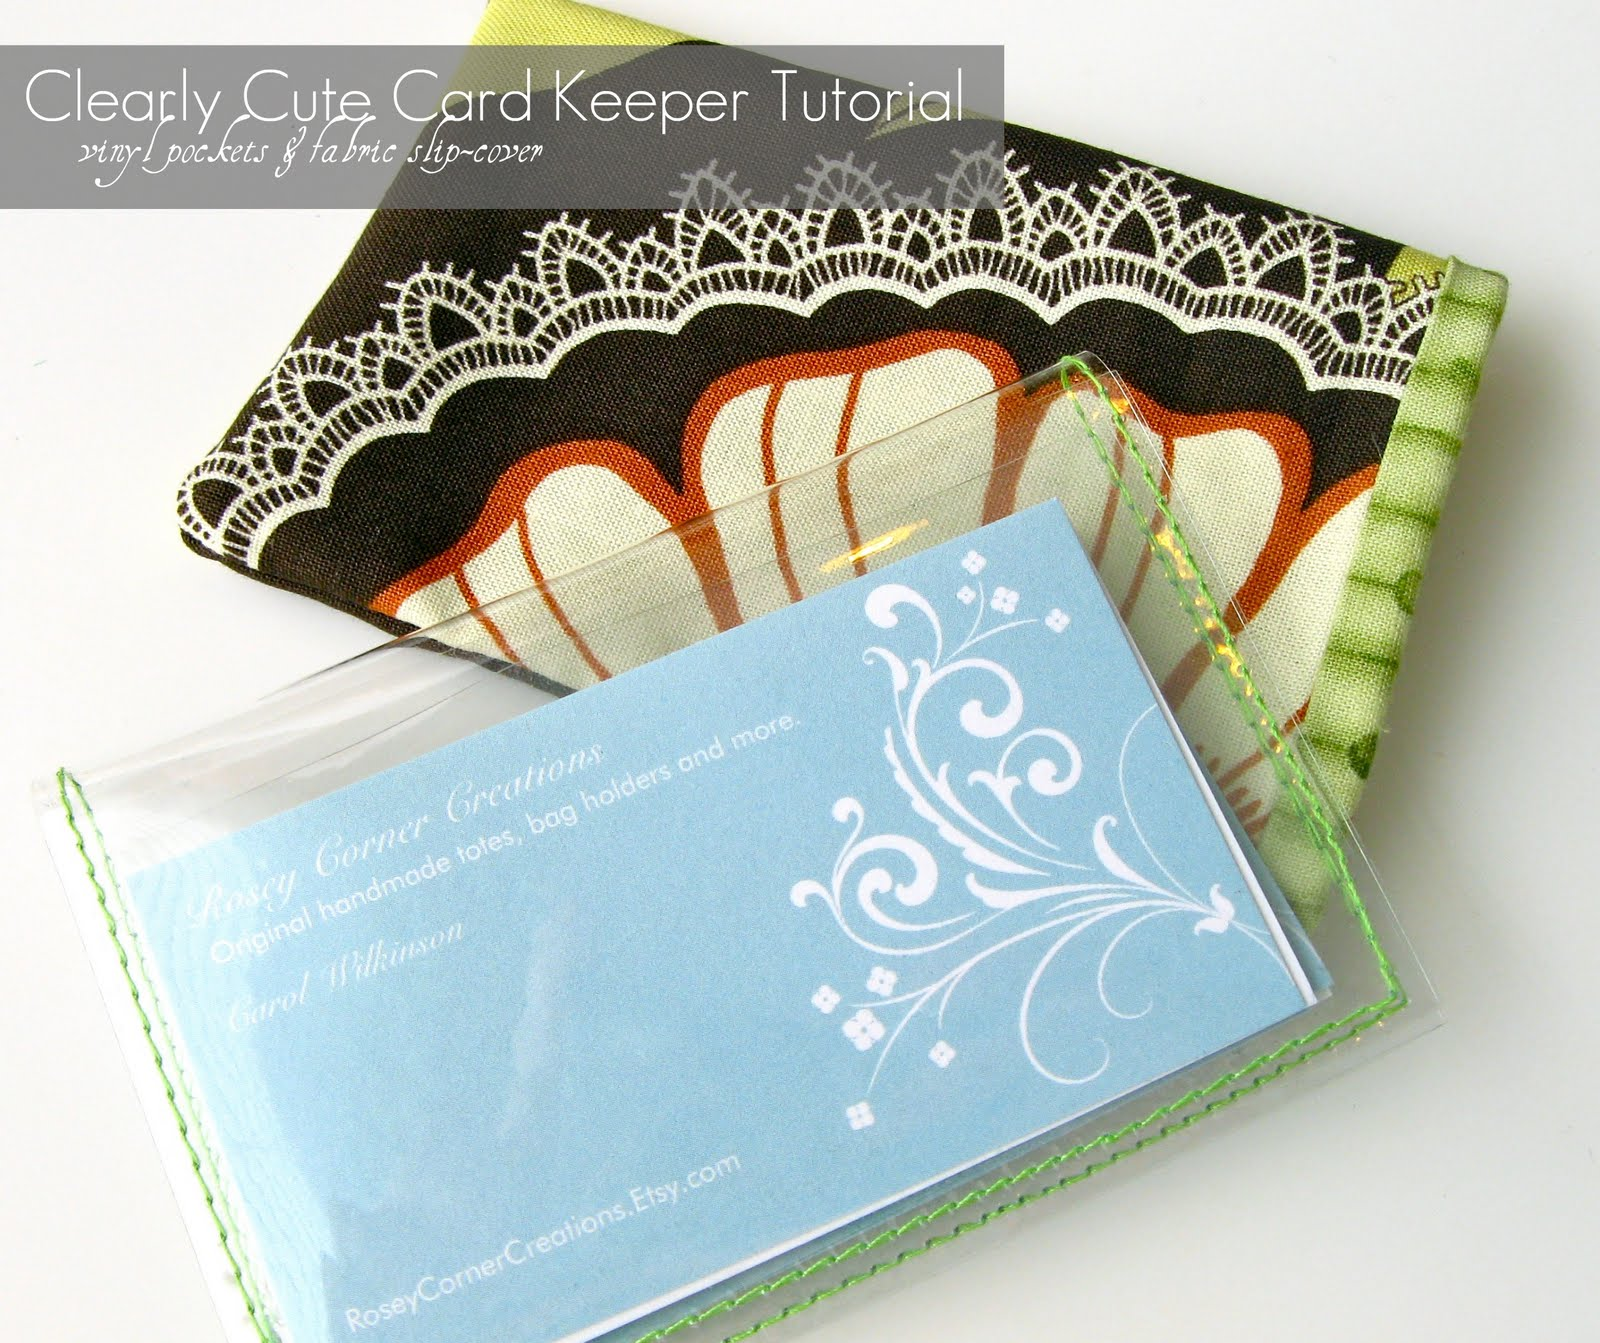 rosey corner creations clearly cute card keeper tutorial clear